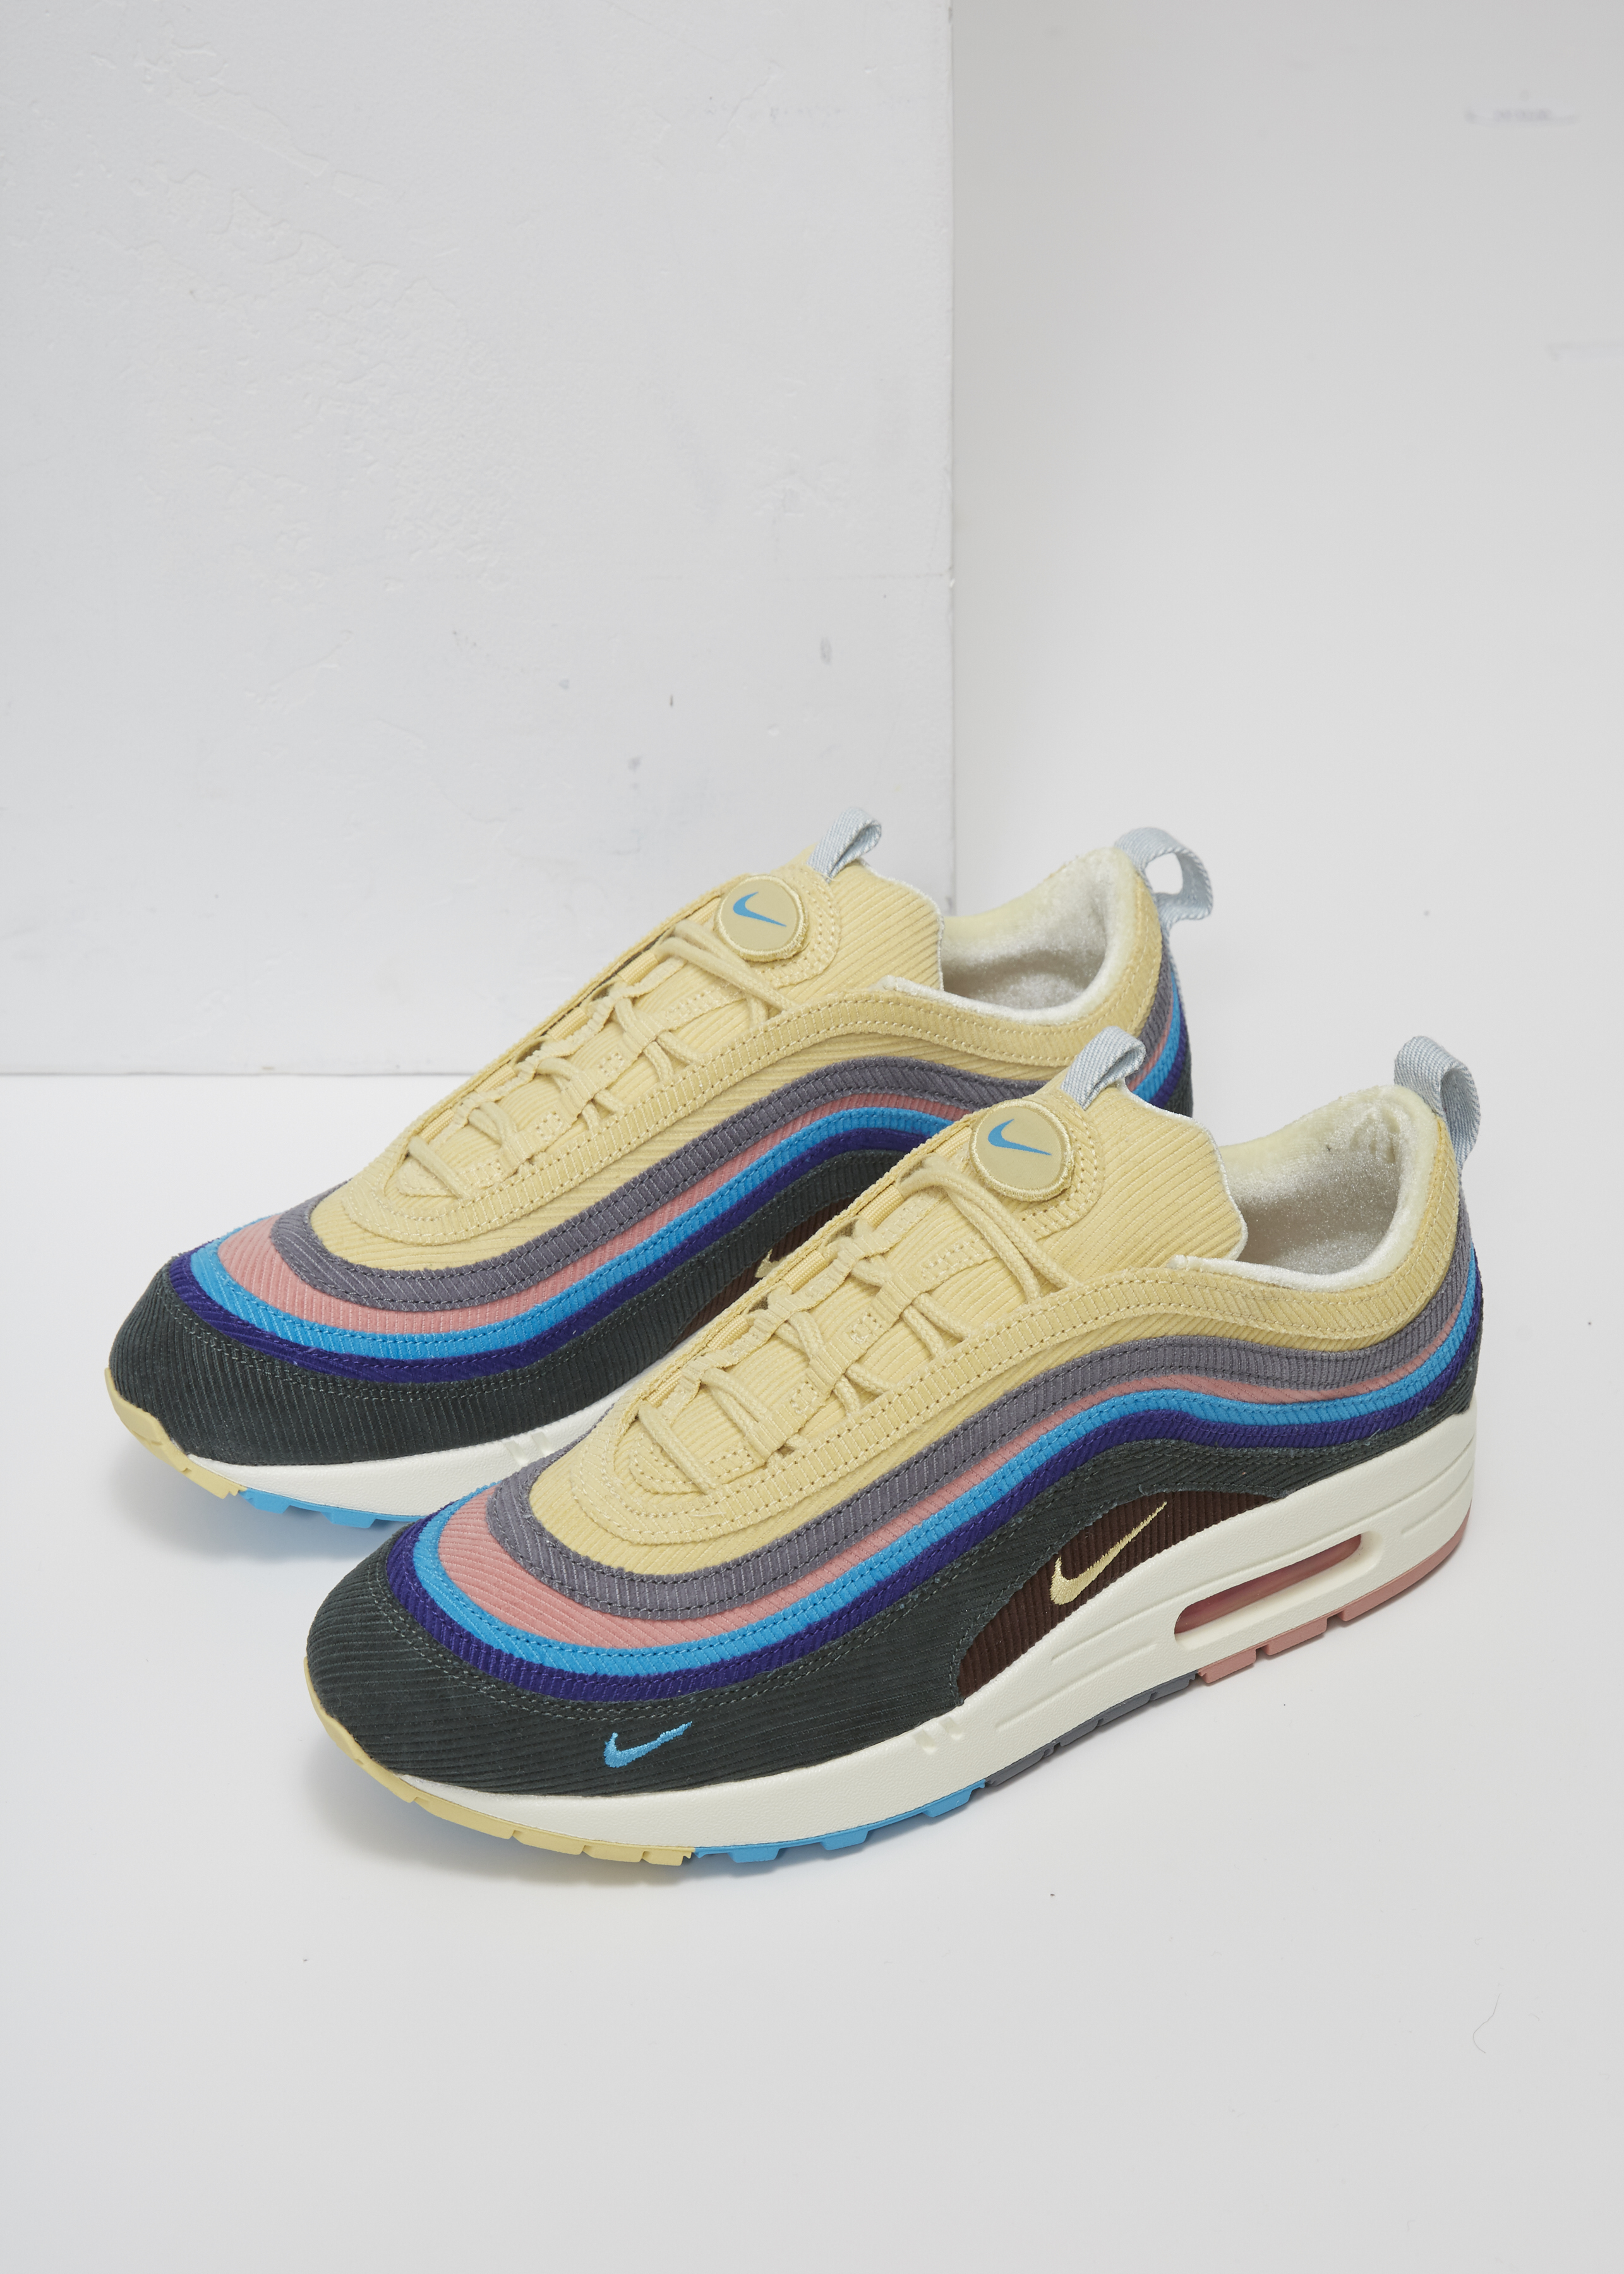 los angeles abde2 04132 The sneaker is completely vegan and was designed by Virginia native Sean  Wotherspoon, who won NIKE s 2017 Vote Forward contest by leaps and bounds.